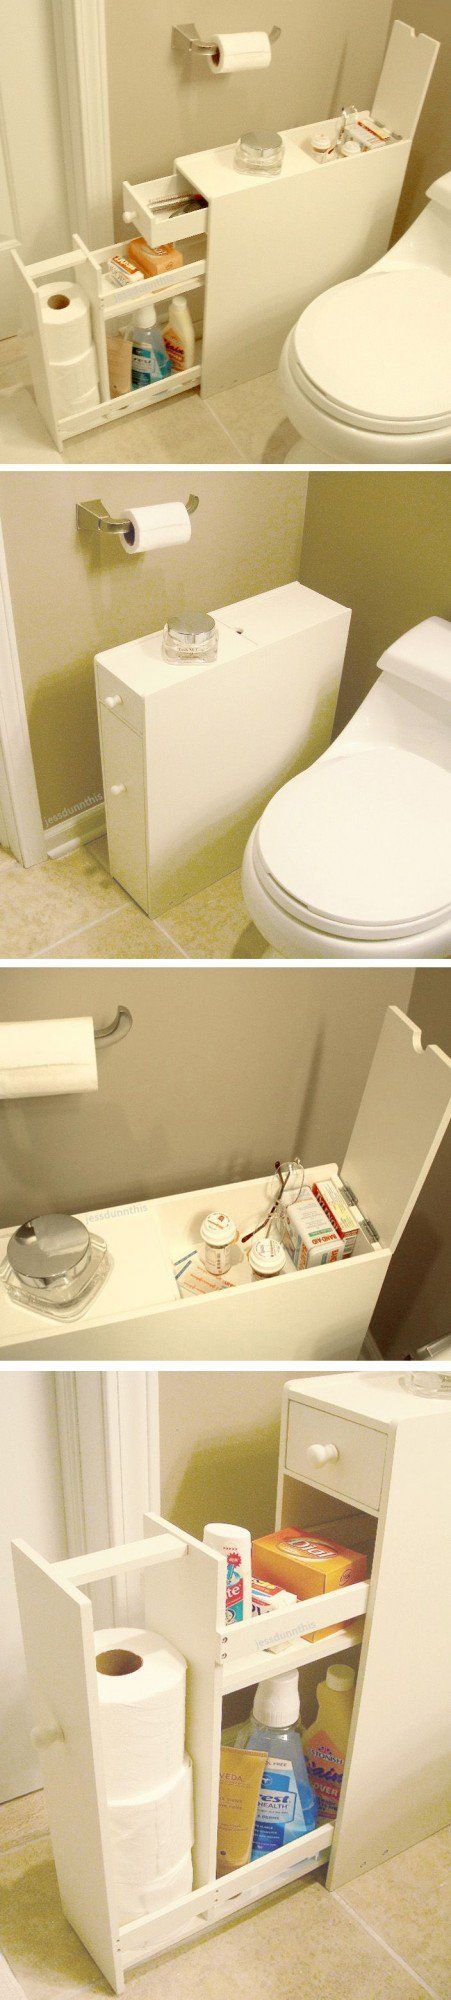 Design Small Bathroom Storage Ideas best 25 small bathroom storage ideas on pinterest top the diy that will fascinate you